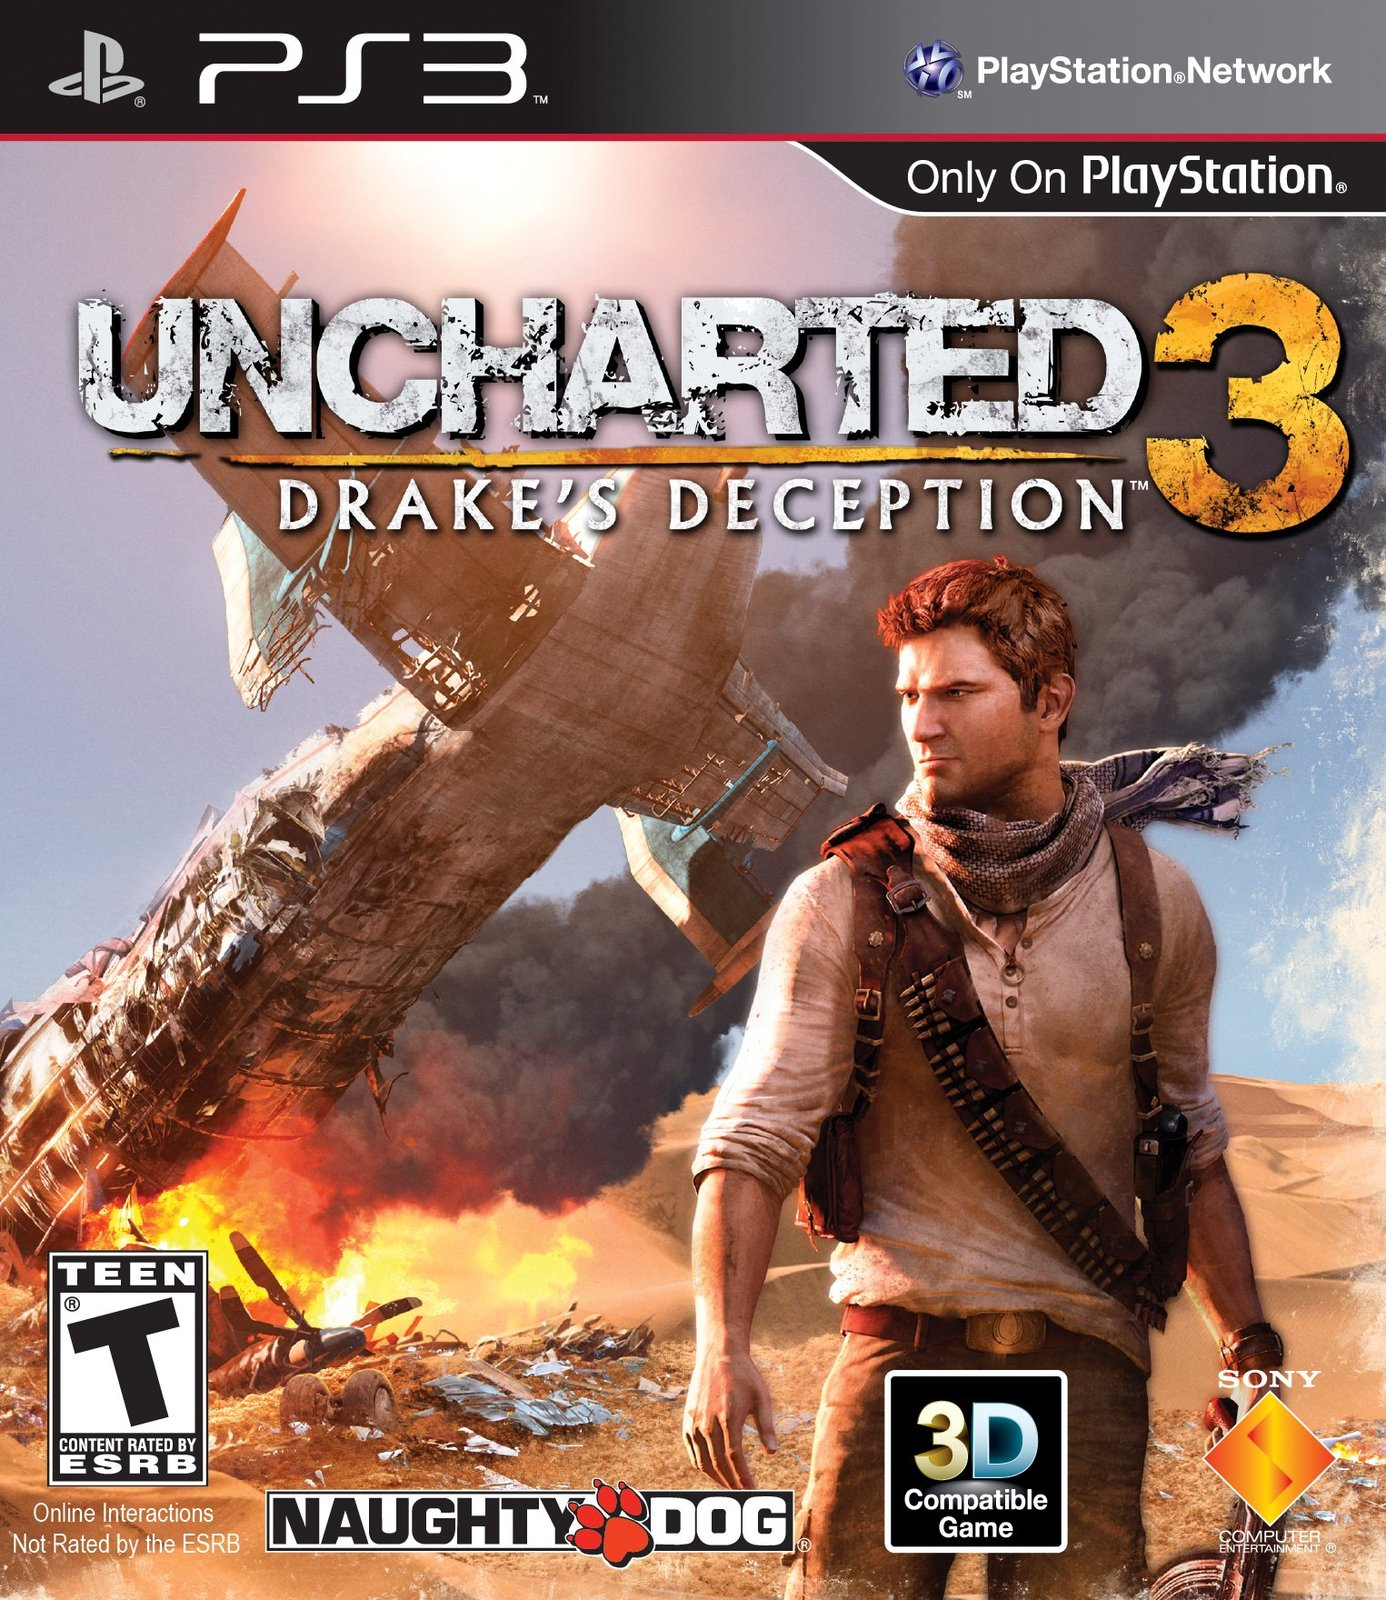 Uncharted 3: Drake's Deception - Playstation 3 [PlayStation 3]